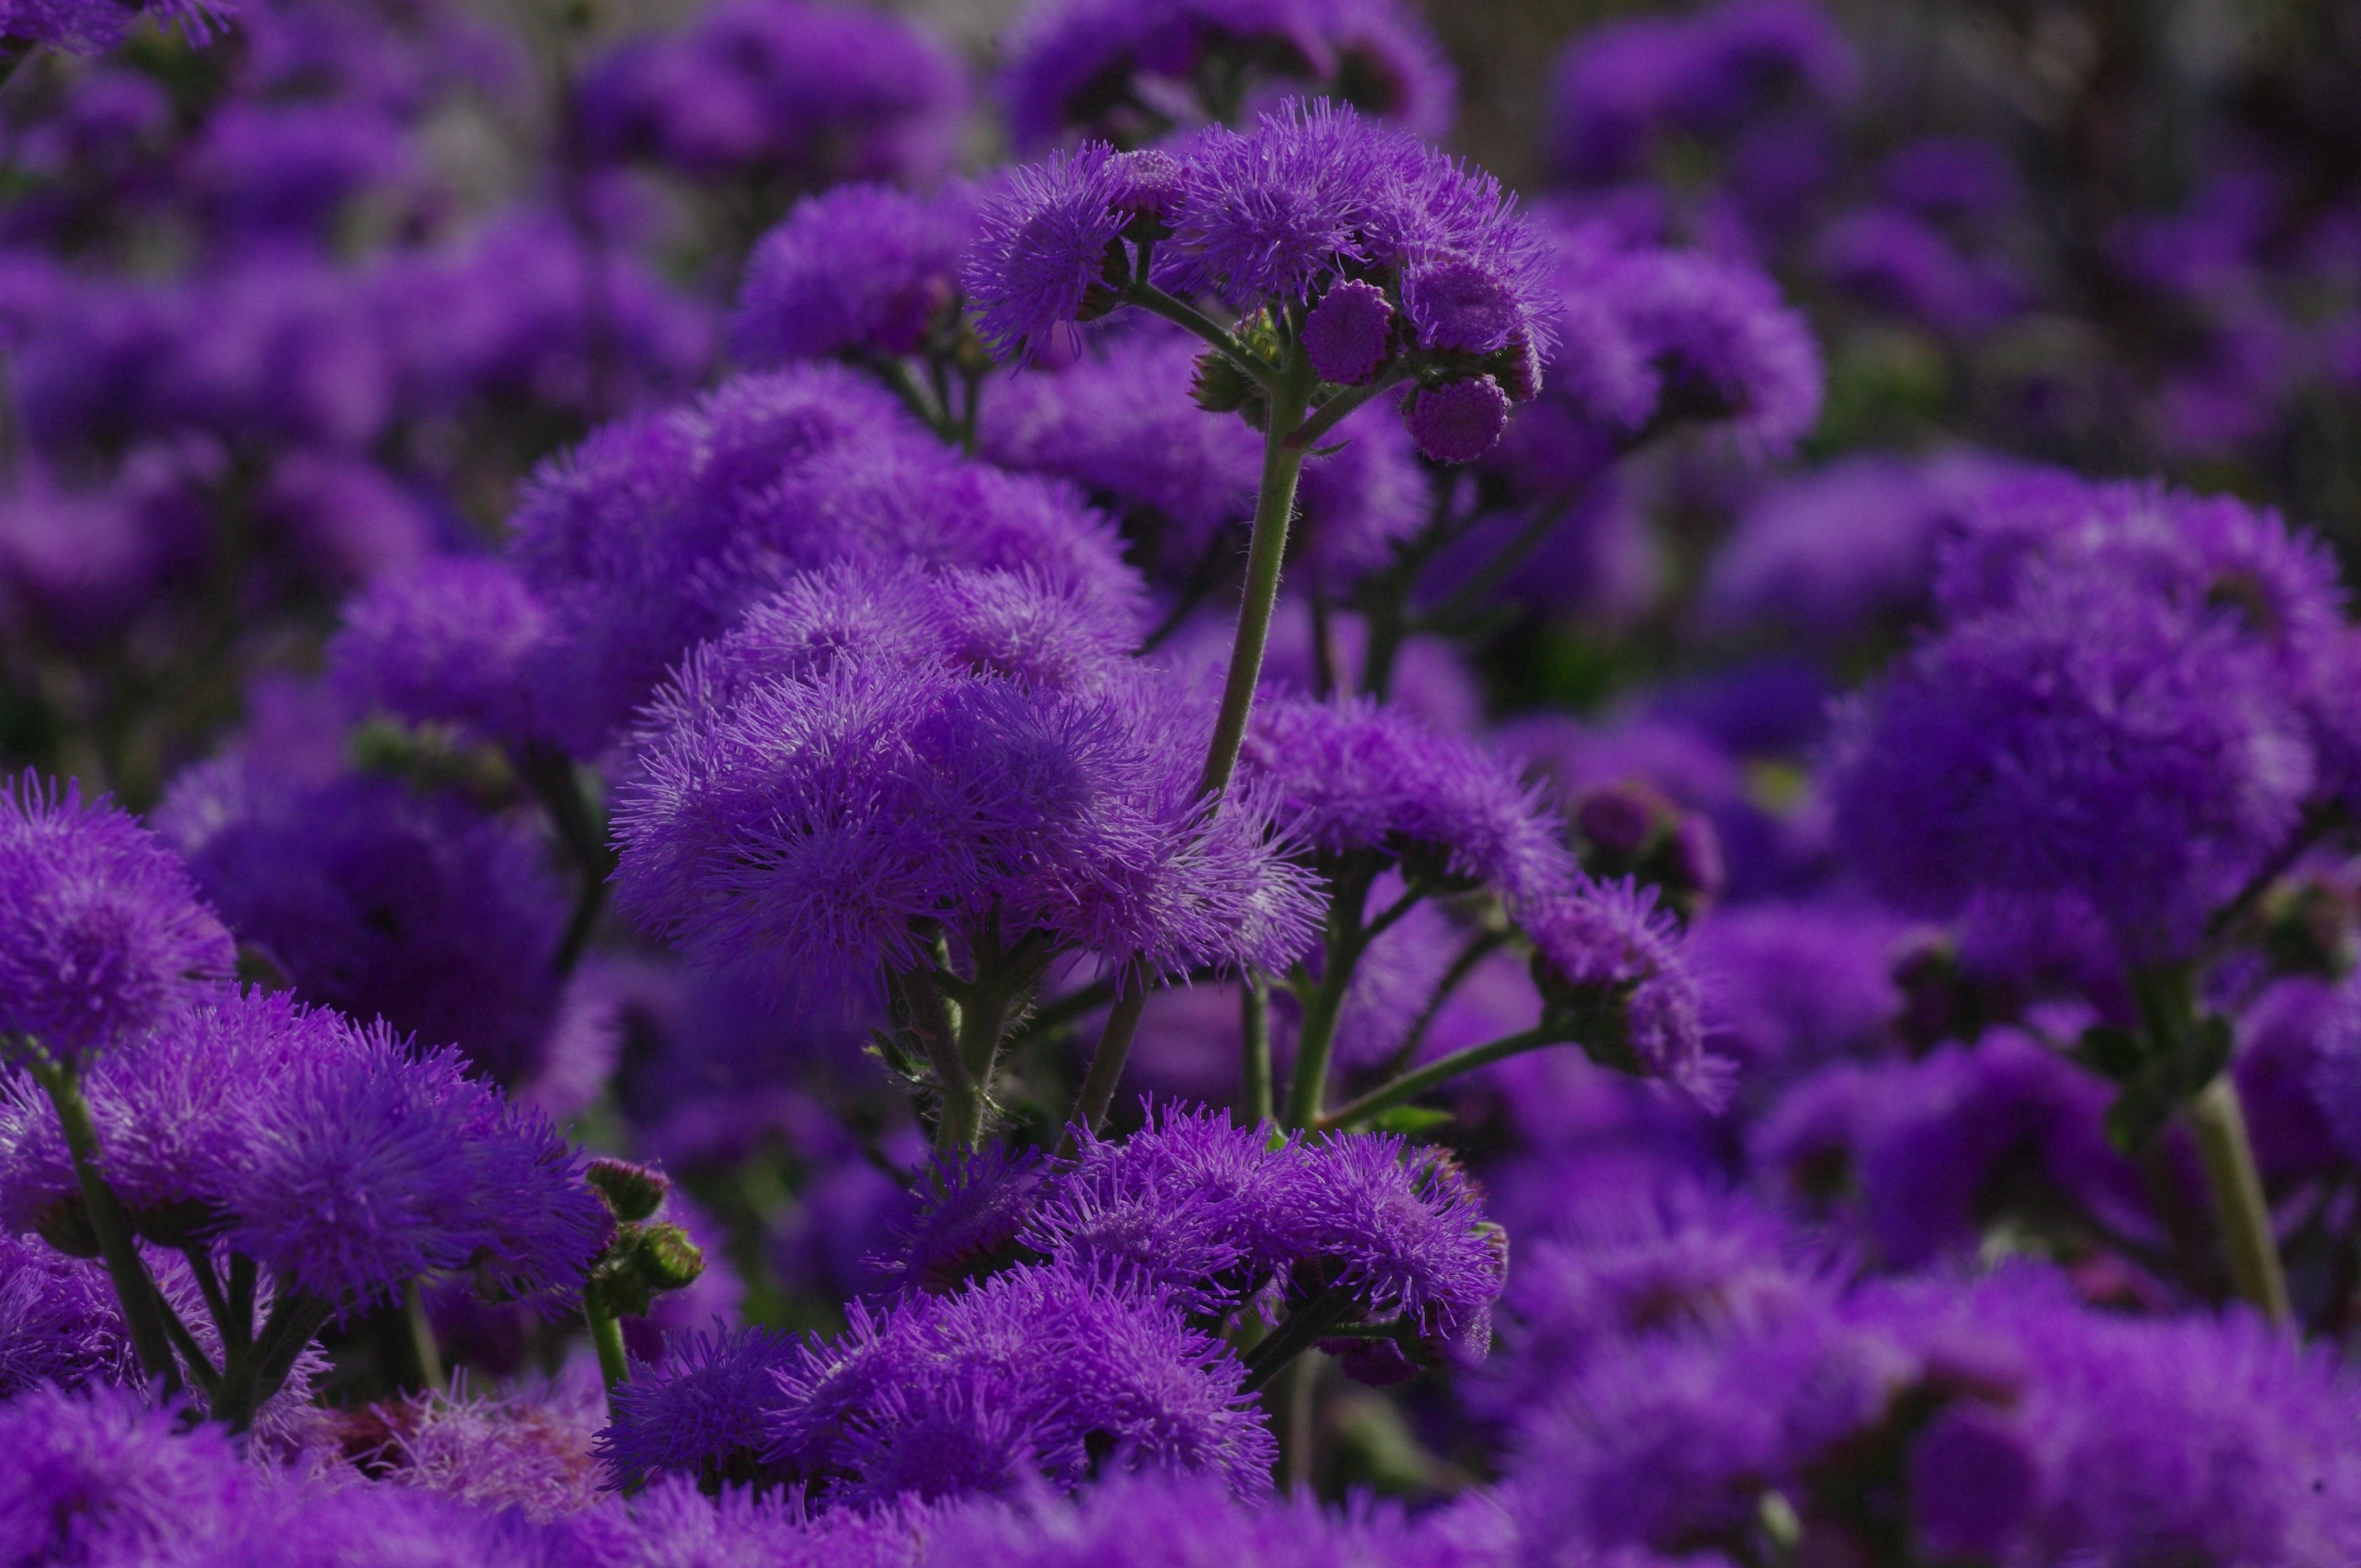 Purple Flower in Focus Photography